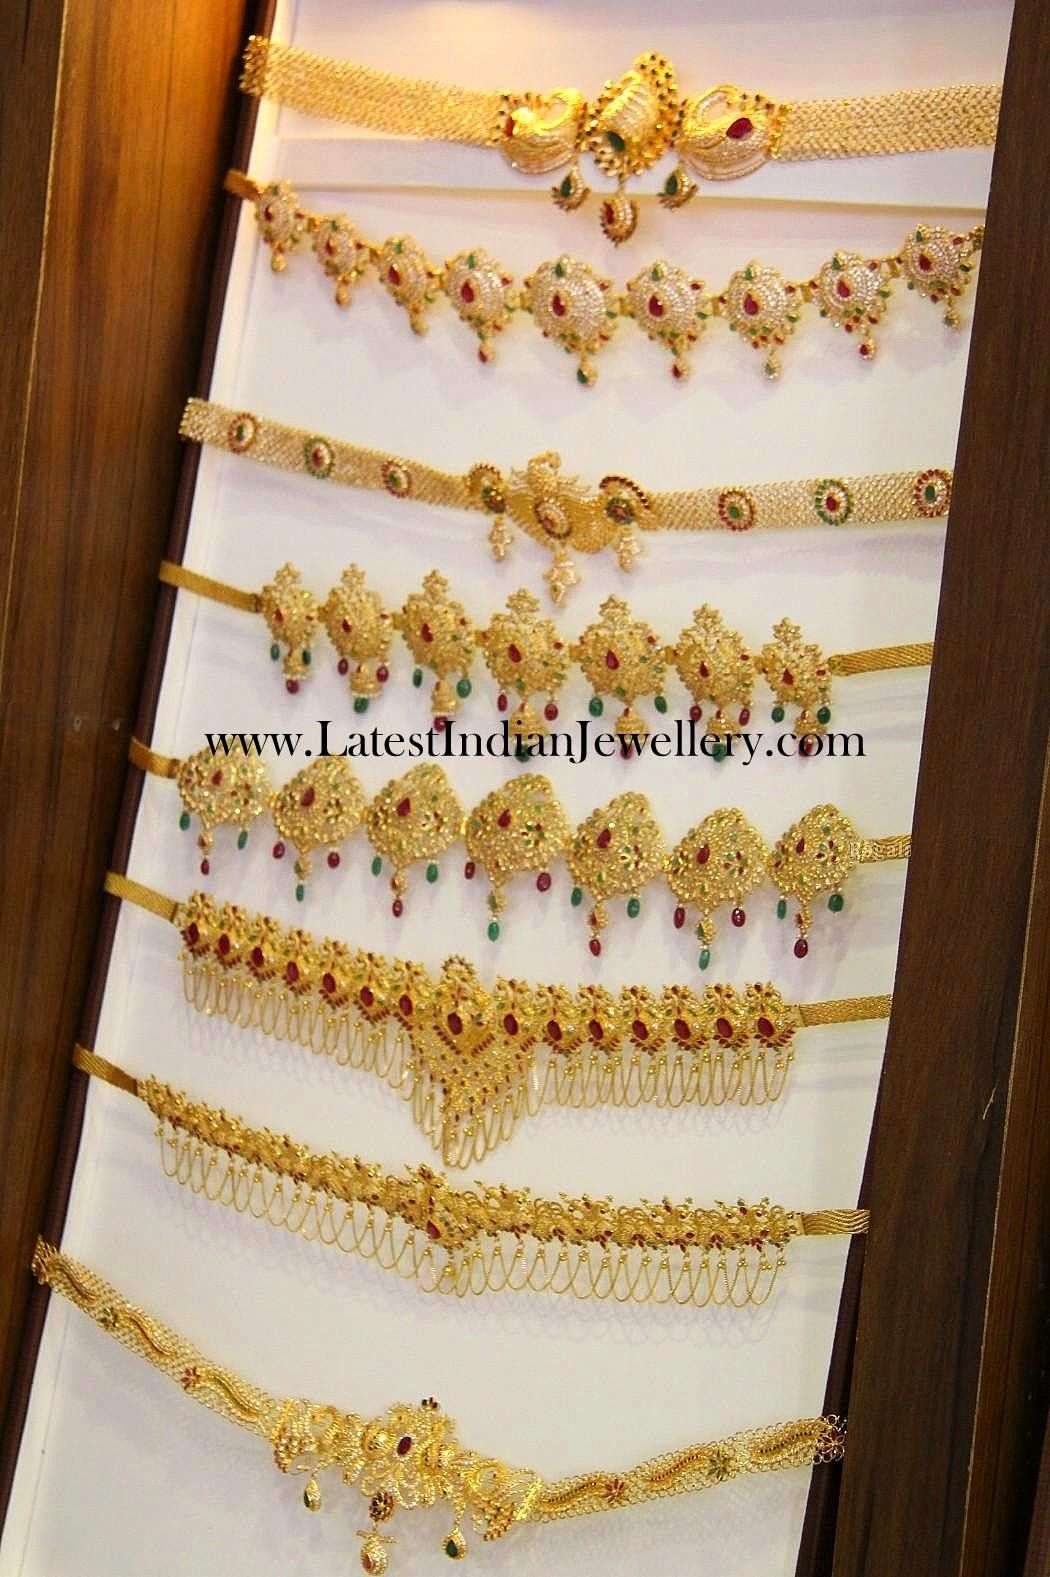 Fancy Light Weight Gold Vaddanam Designs Vaddanam Designs Light Weight Gold Jewellery Gold Jewellery Design Necklaces